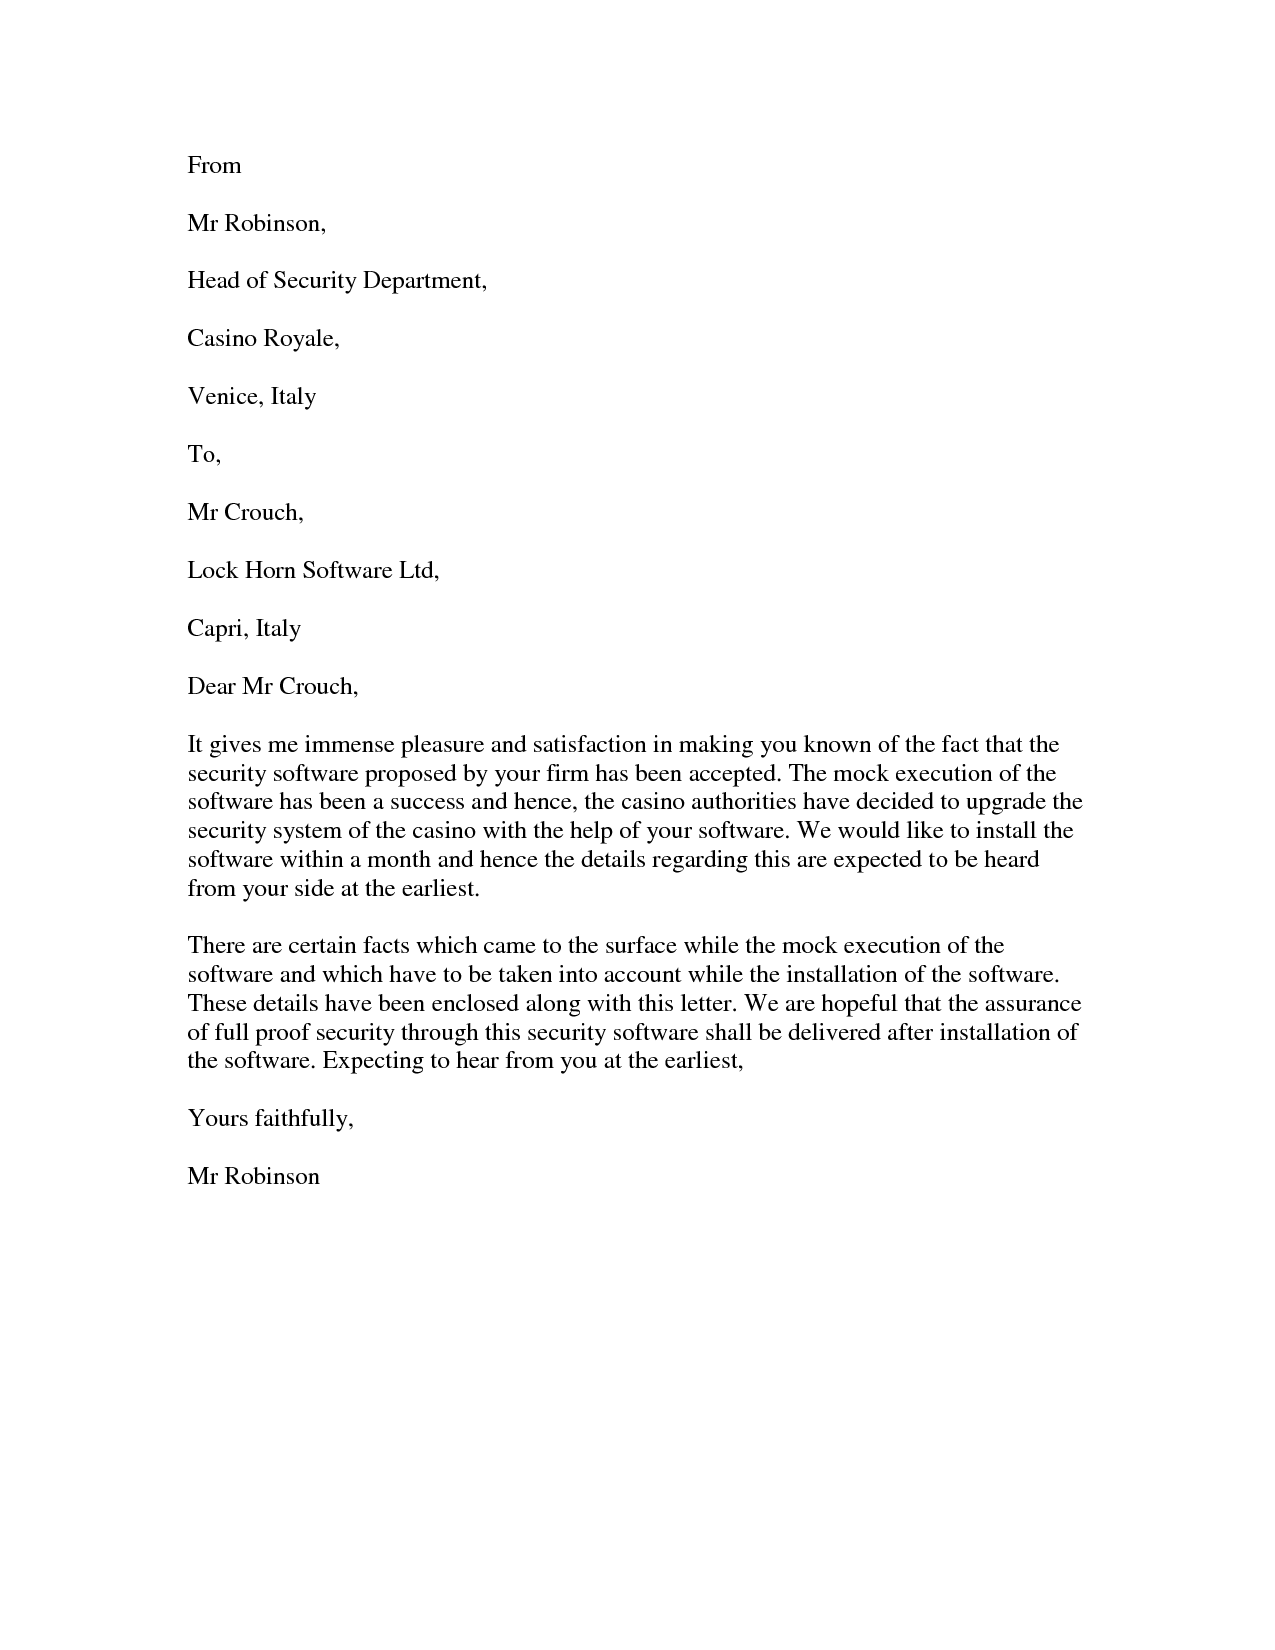 Software Acceptance Letter To Ensure A Mistake Free Letter Of